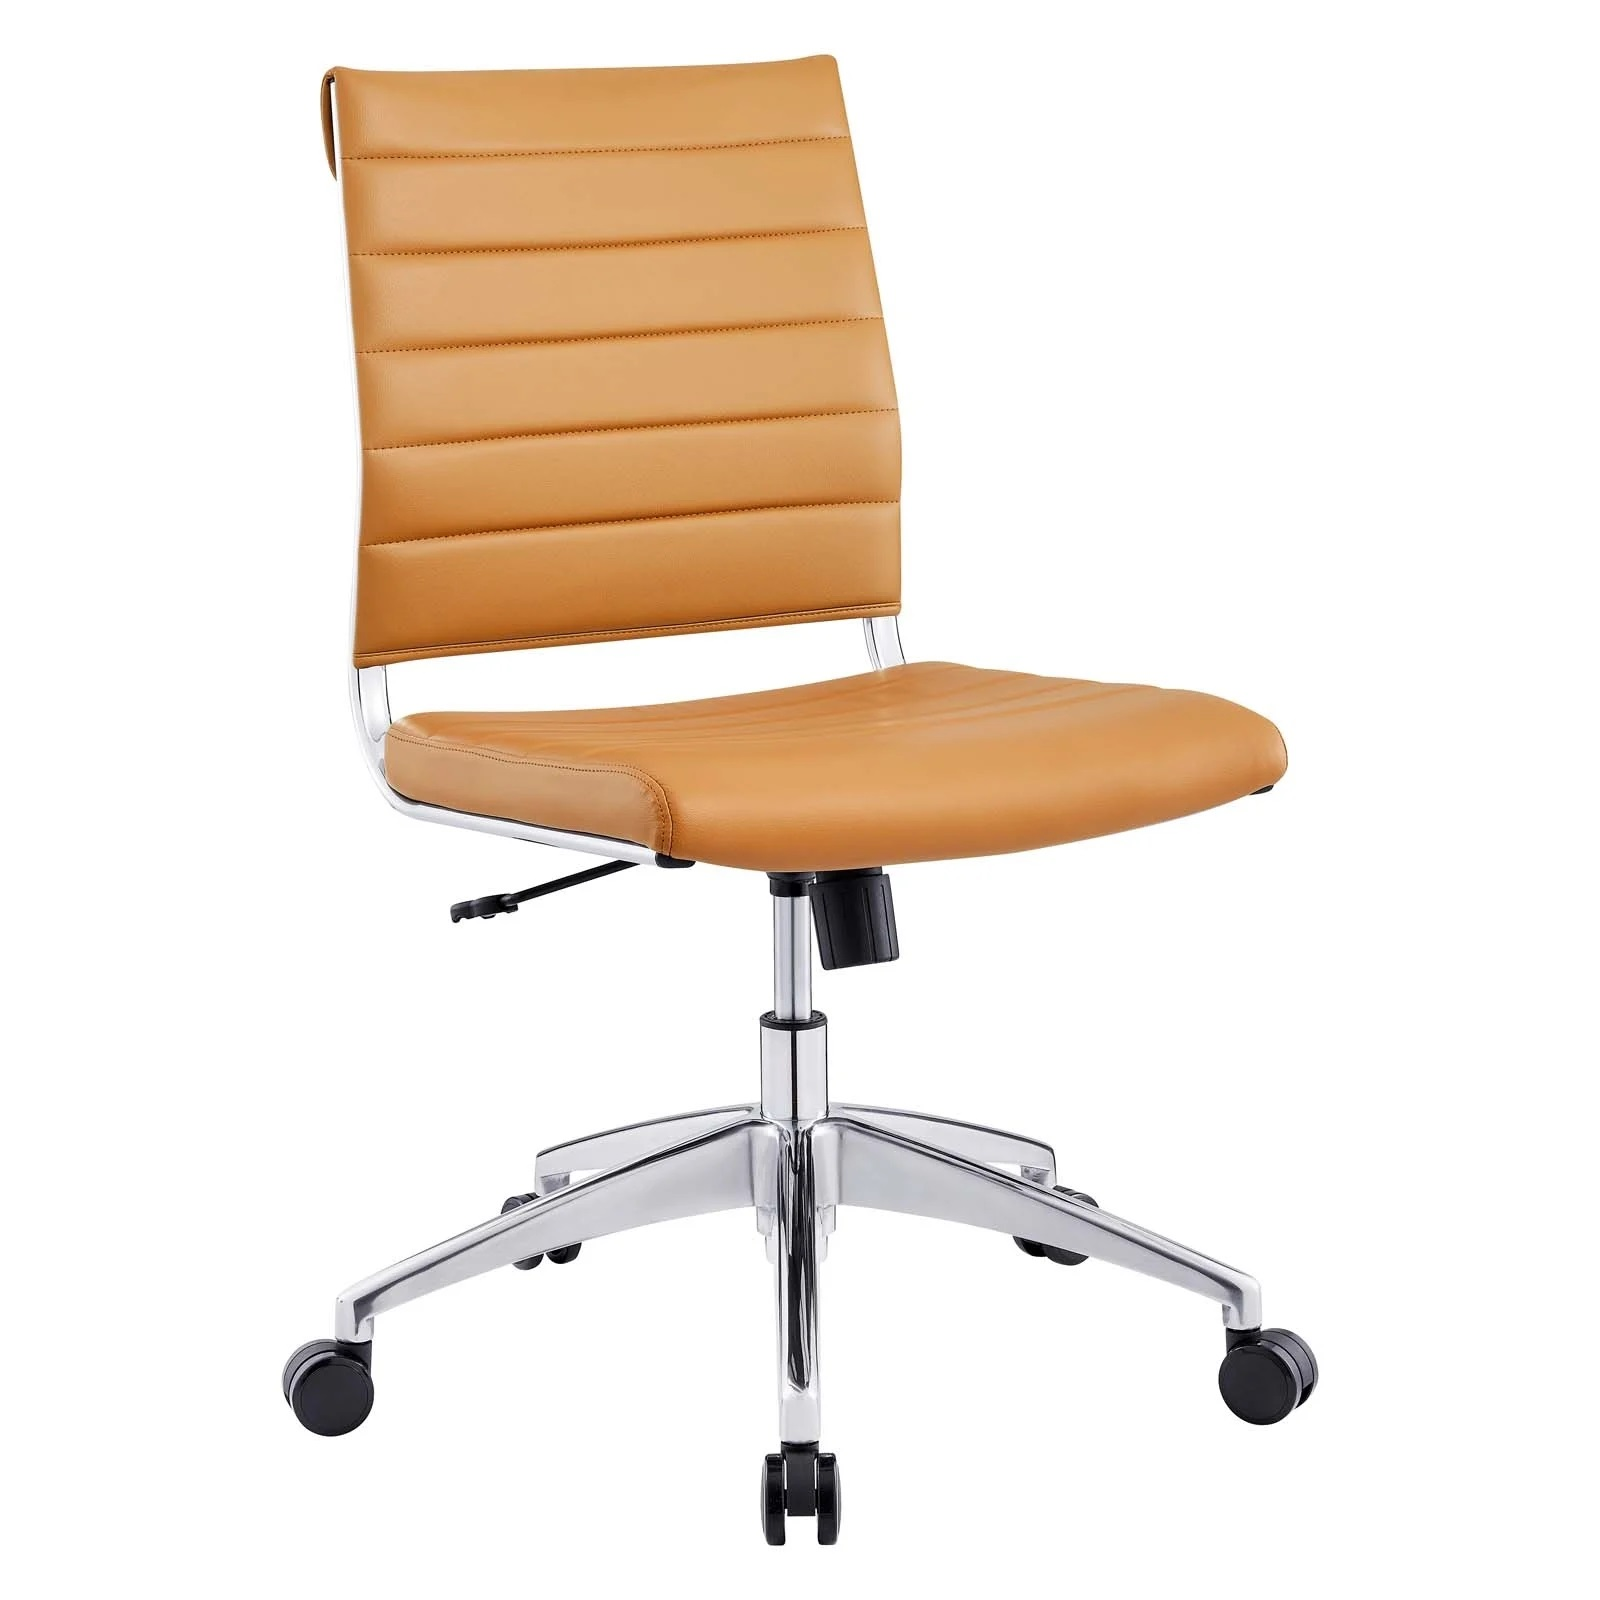 Armless Mid Back Office Chair in Tan